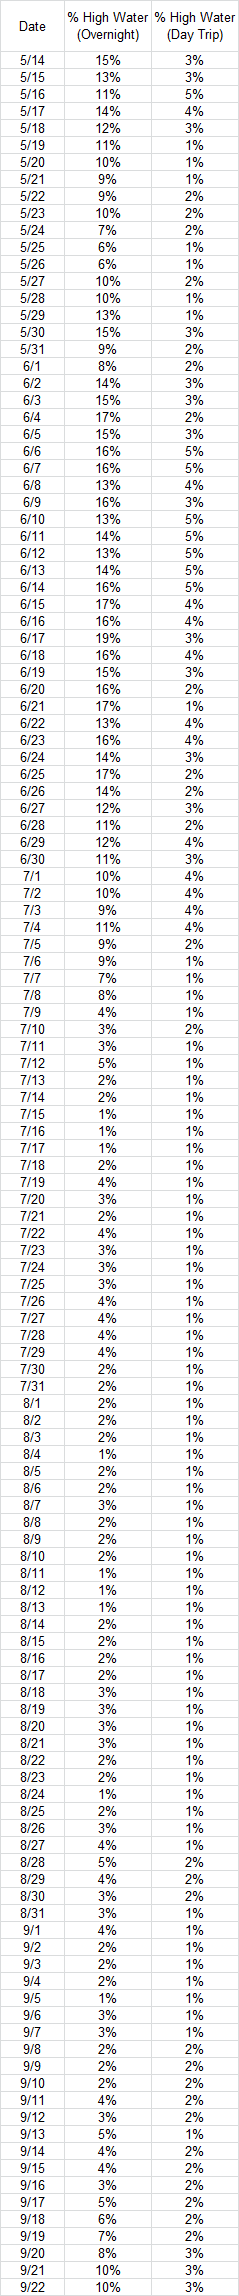 High water odds in table form